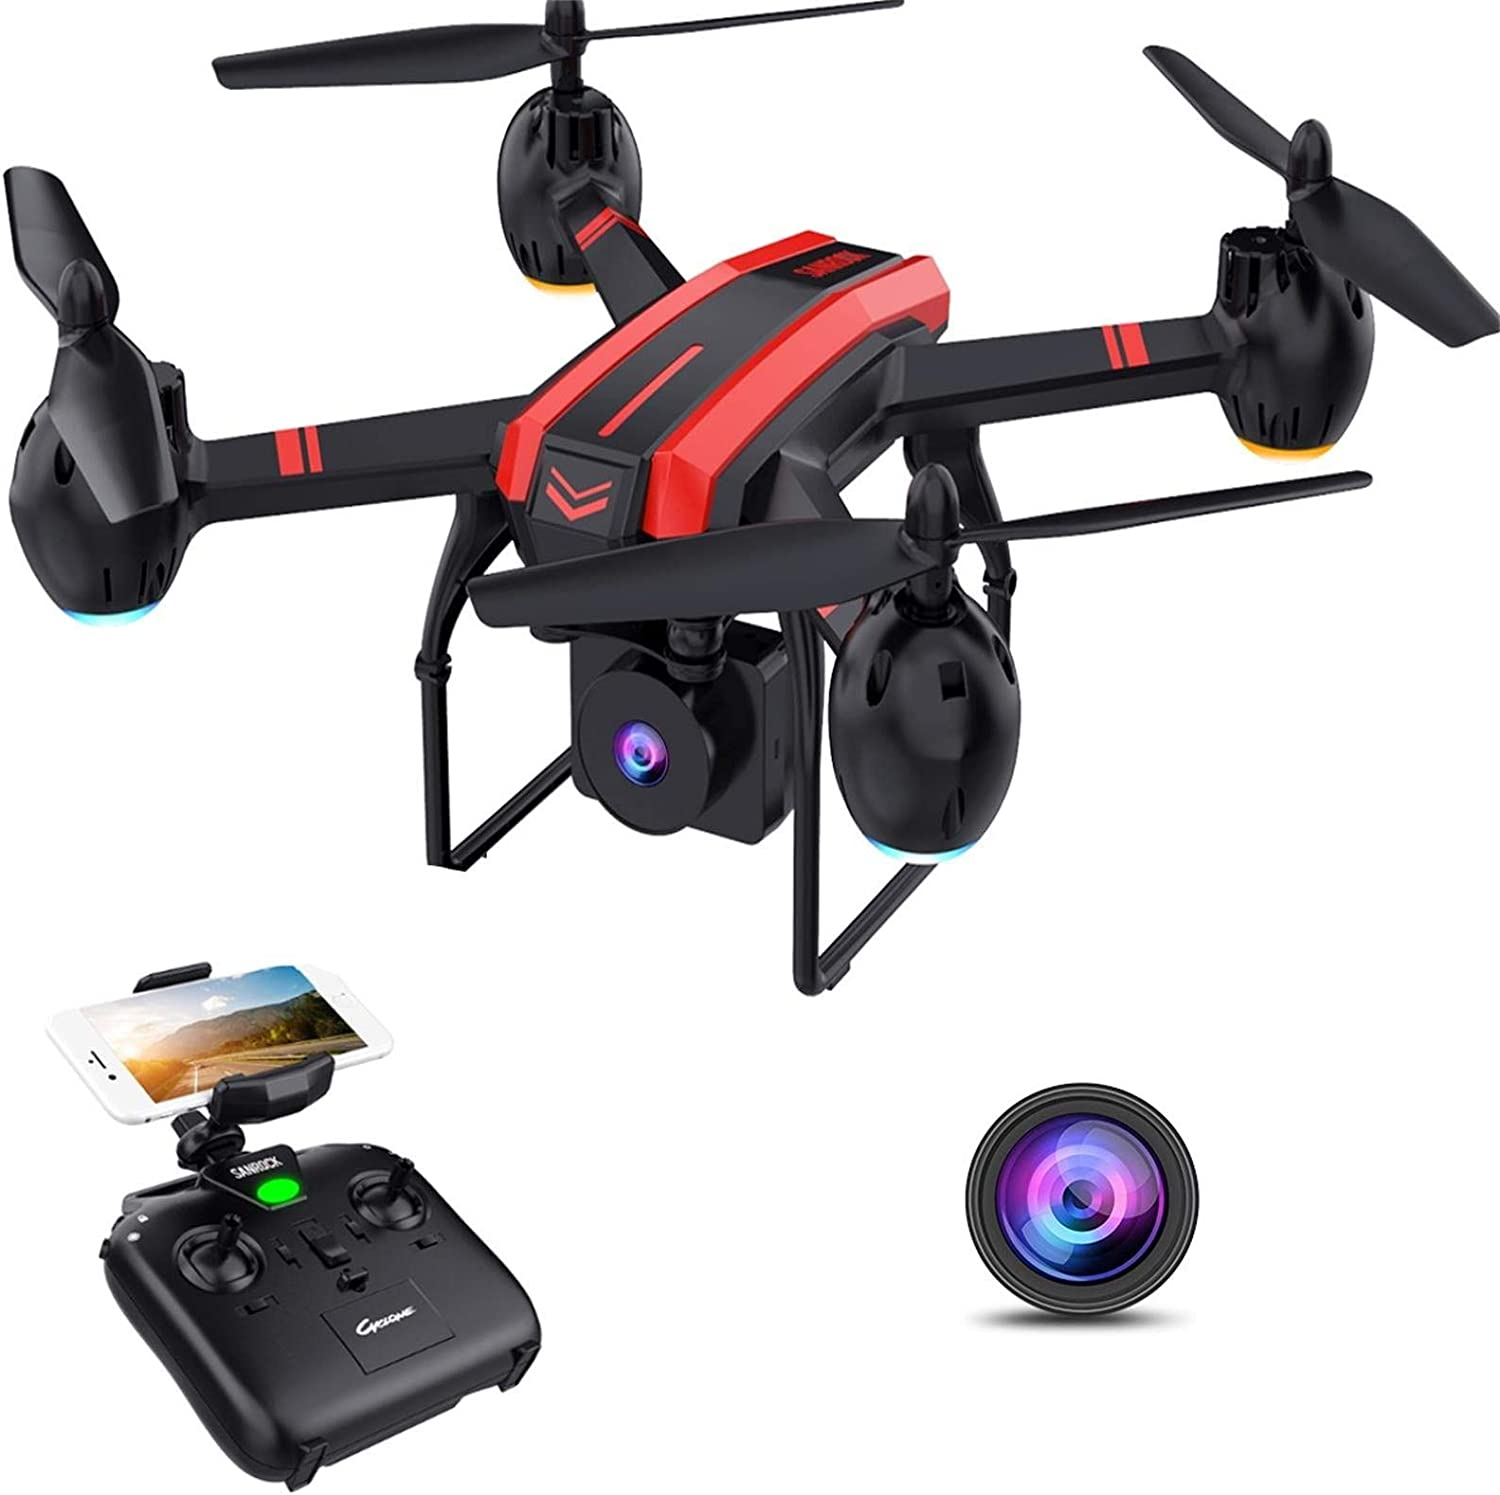 image of a drone with control in black and red combination